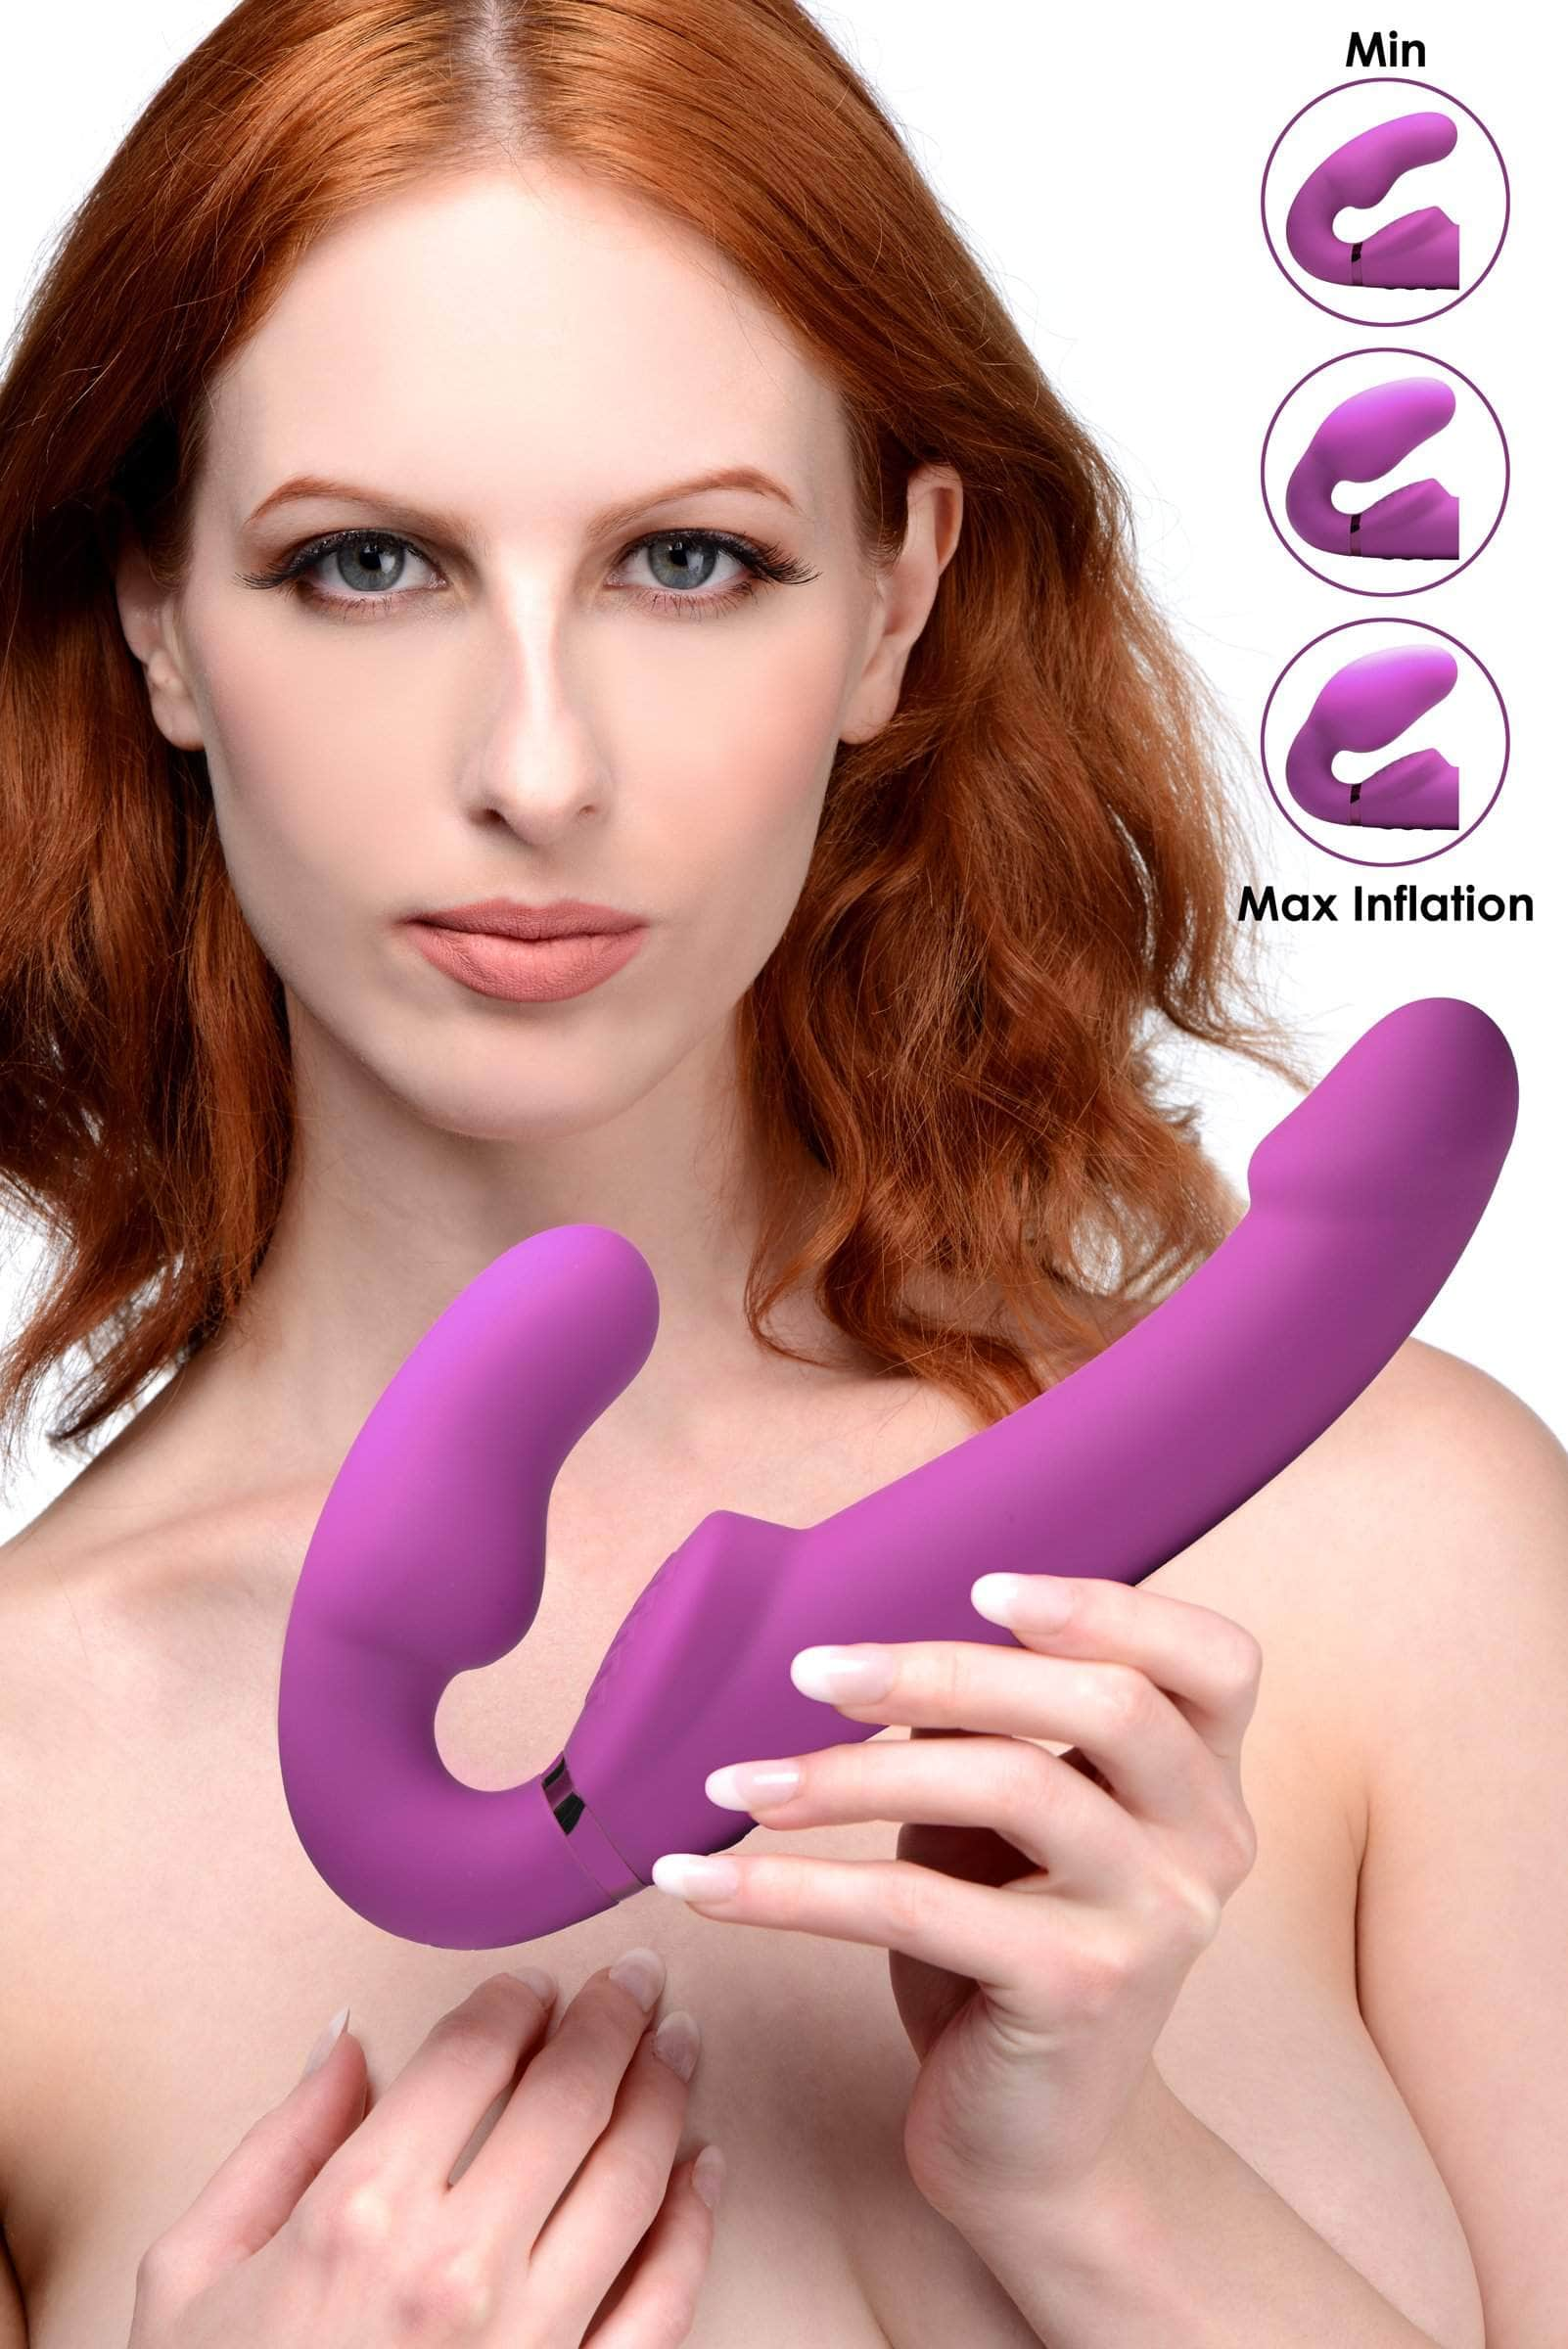 Worlds First Remote Control Inflatable Vibrating Silicone Ergo Fit Strapless Strap-on